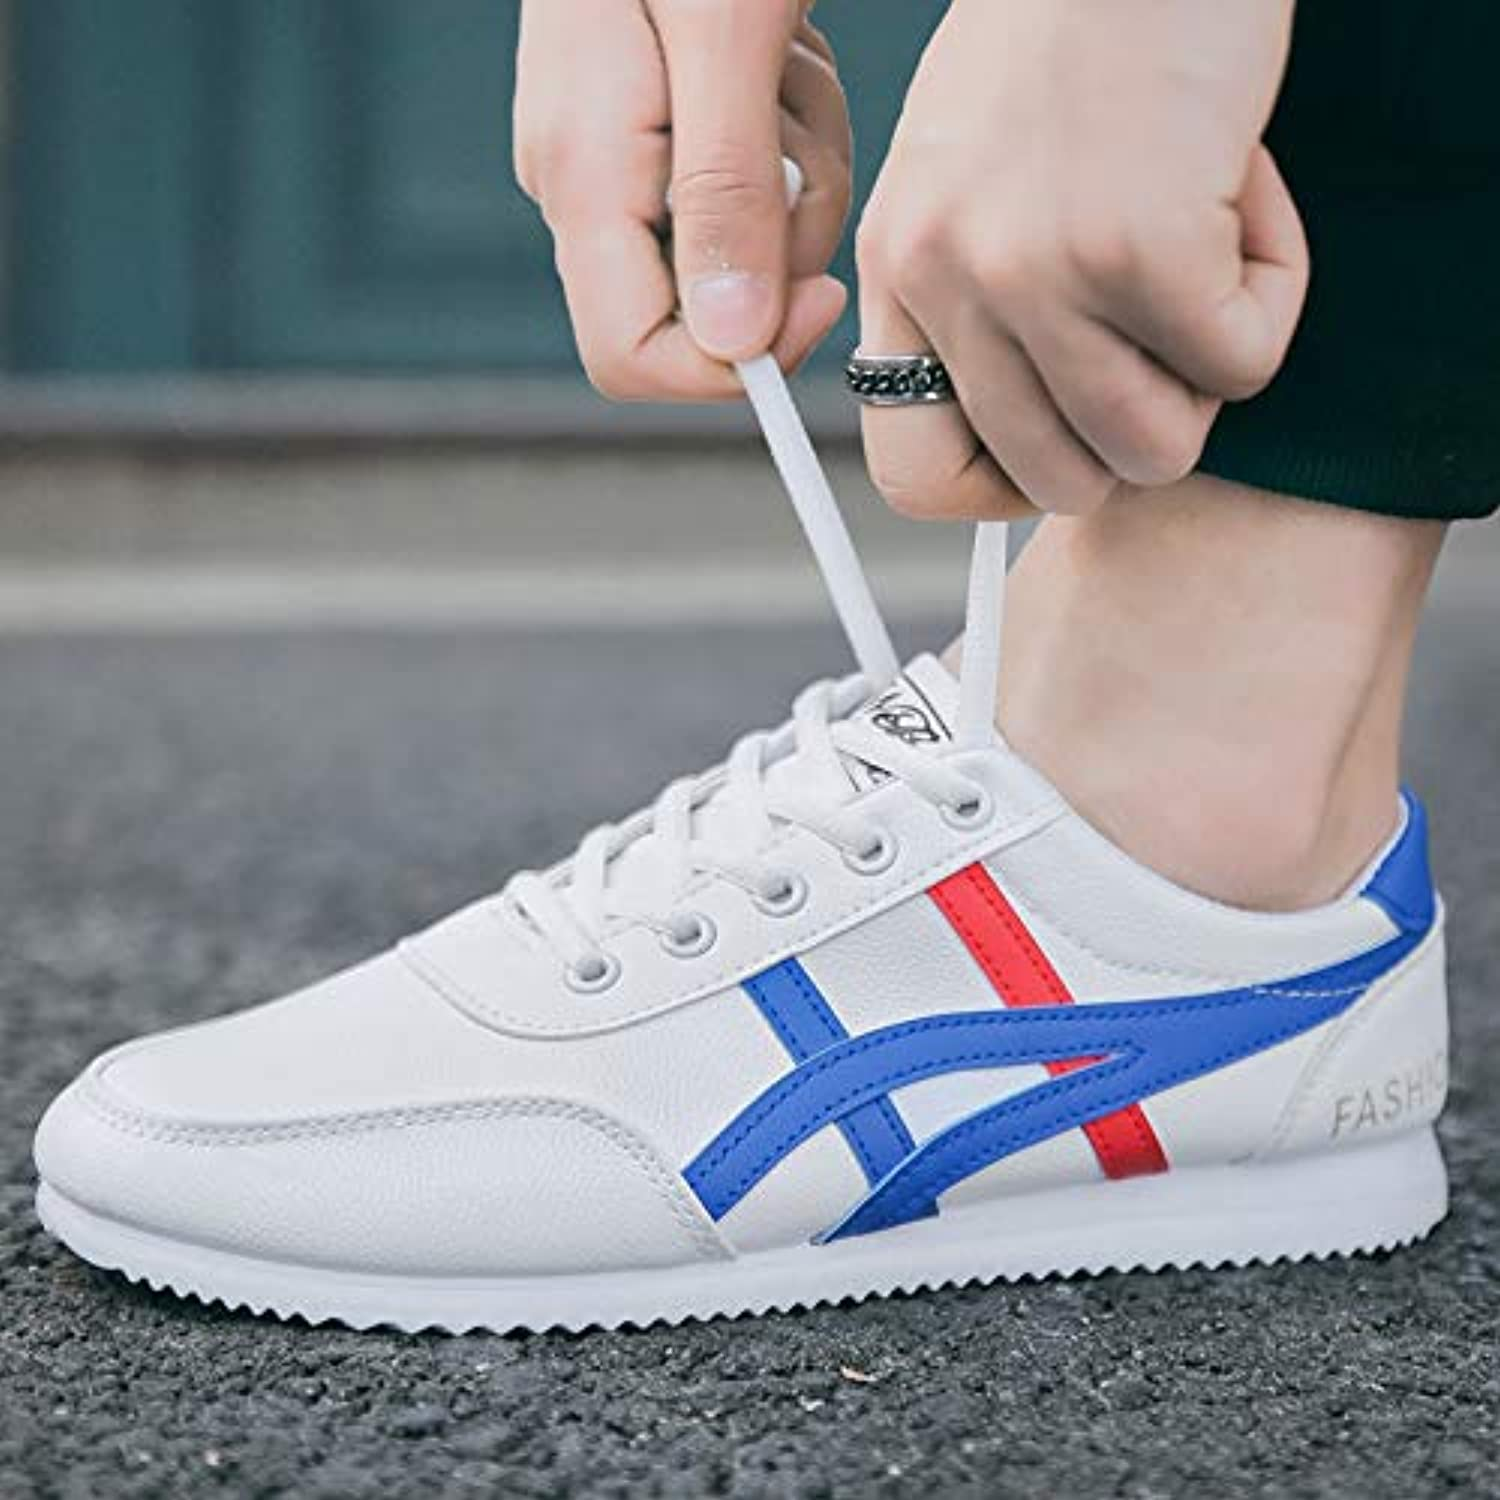 LOVDRAM Men's shoes Spring Sports shoes Lightweight Breathable Fashion Men'S shoes Low To Help Casual shoes Korean Version Of The Non-Slip Pu Men'S shoes